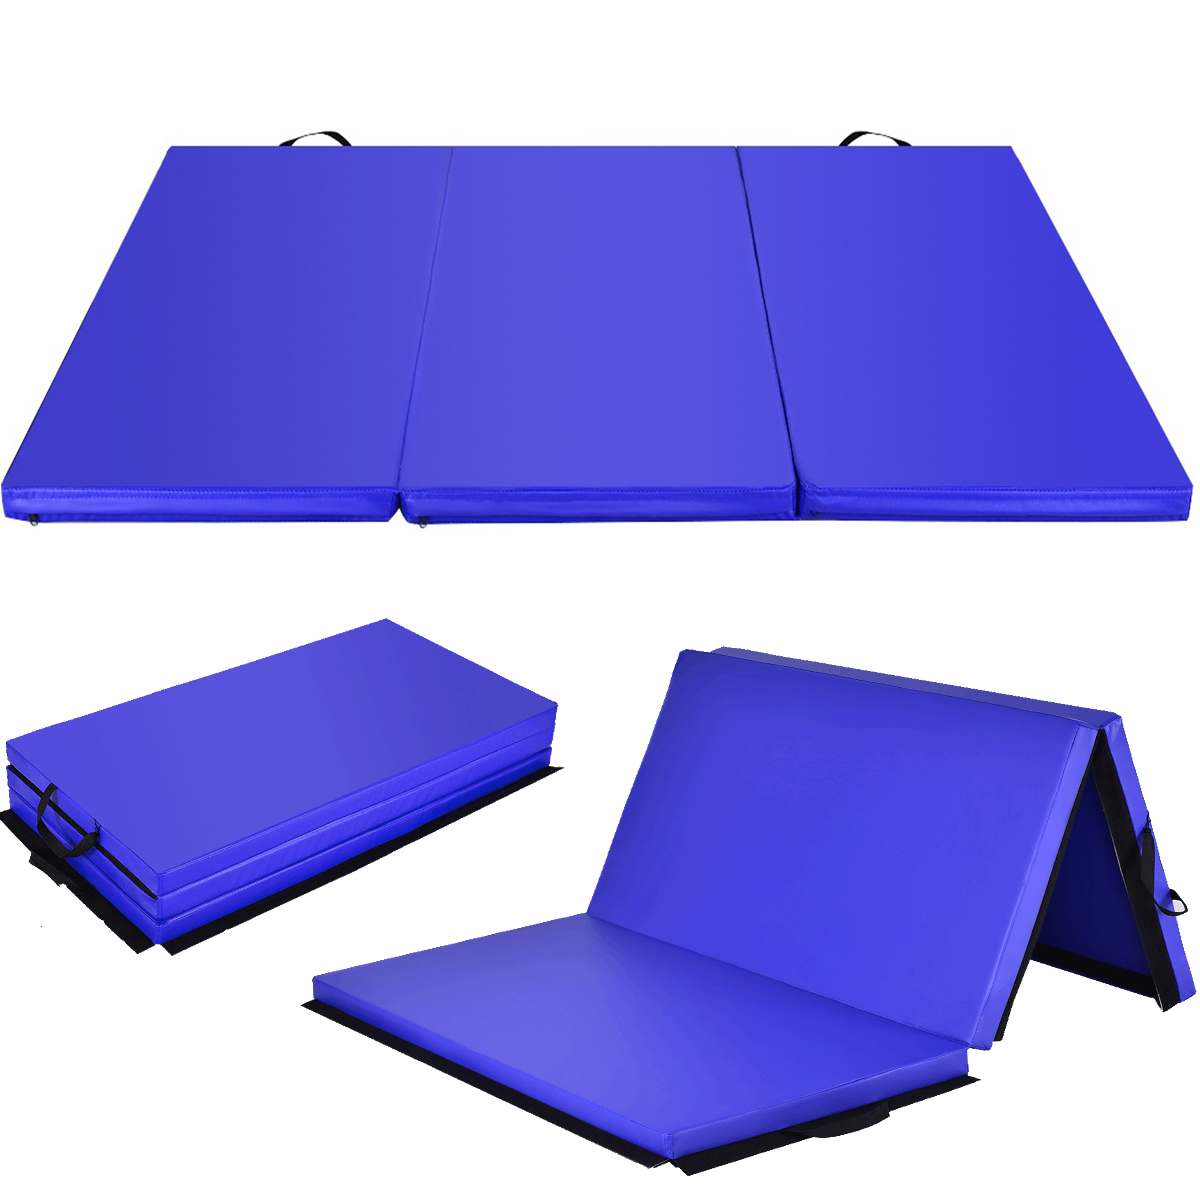 COSTWAY Blue Tri-Fold Gymnastics Mat 6X2 Folding Fitness Exercise W// Carrying Handles